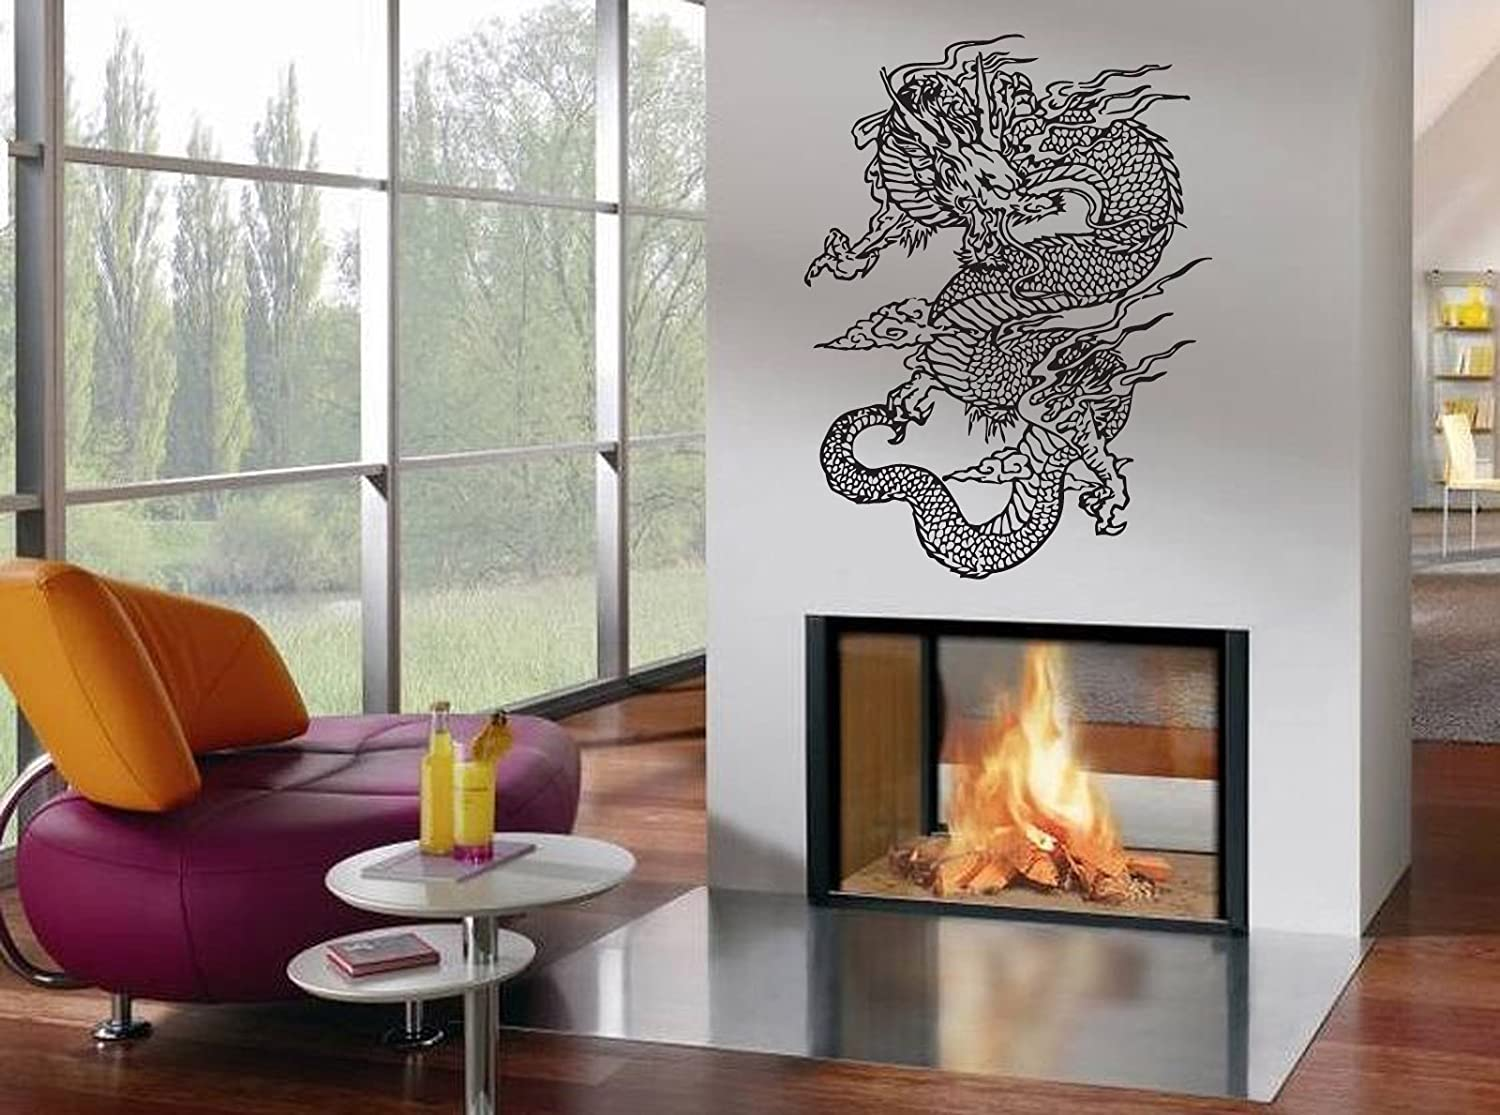 Amazon.com: Wall Decor Vinyl Decal Sticker Japanese Dragon Tz980: Home U0026  Kitchen